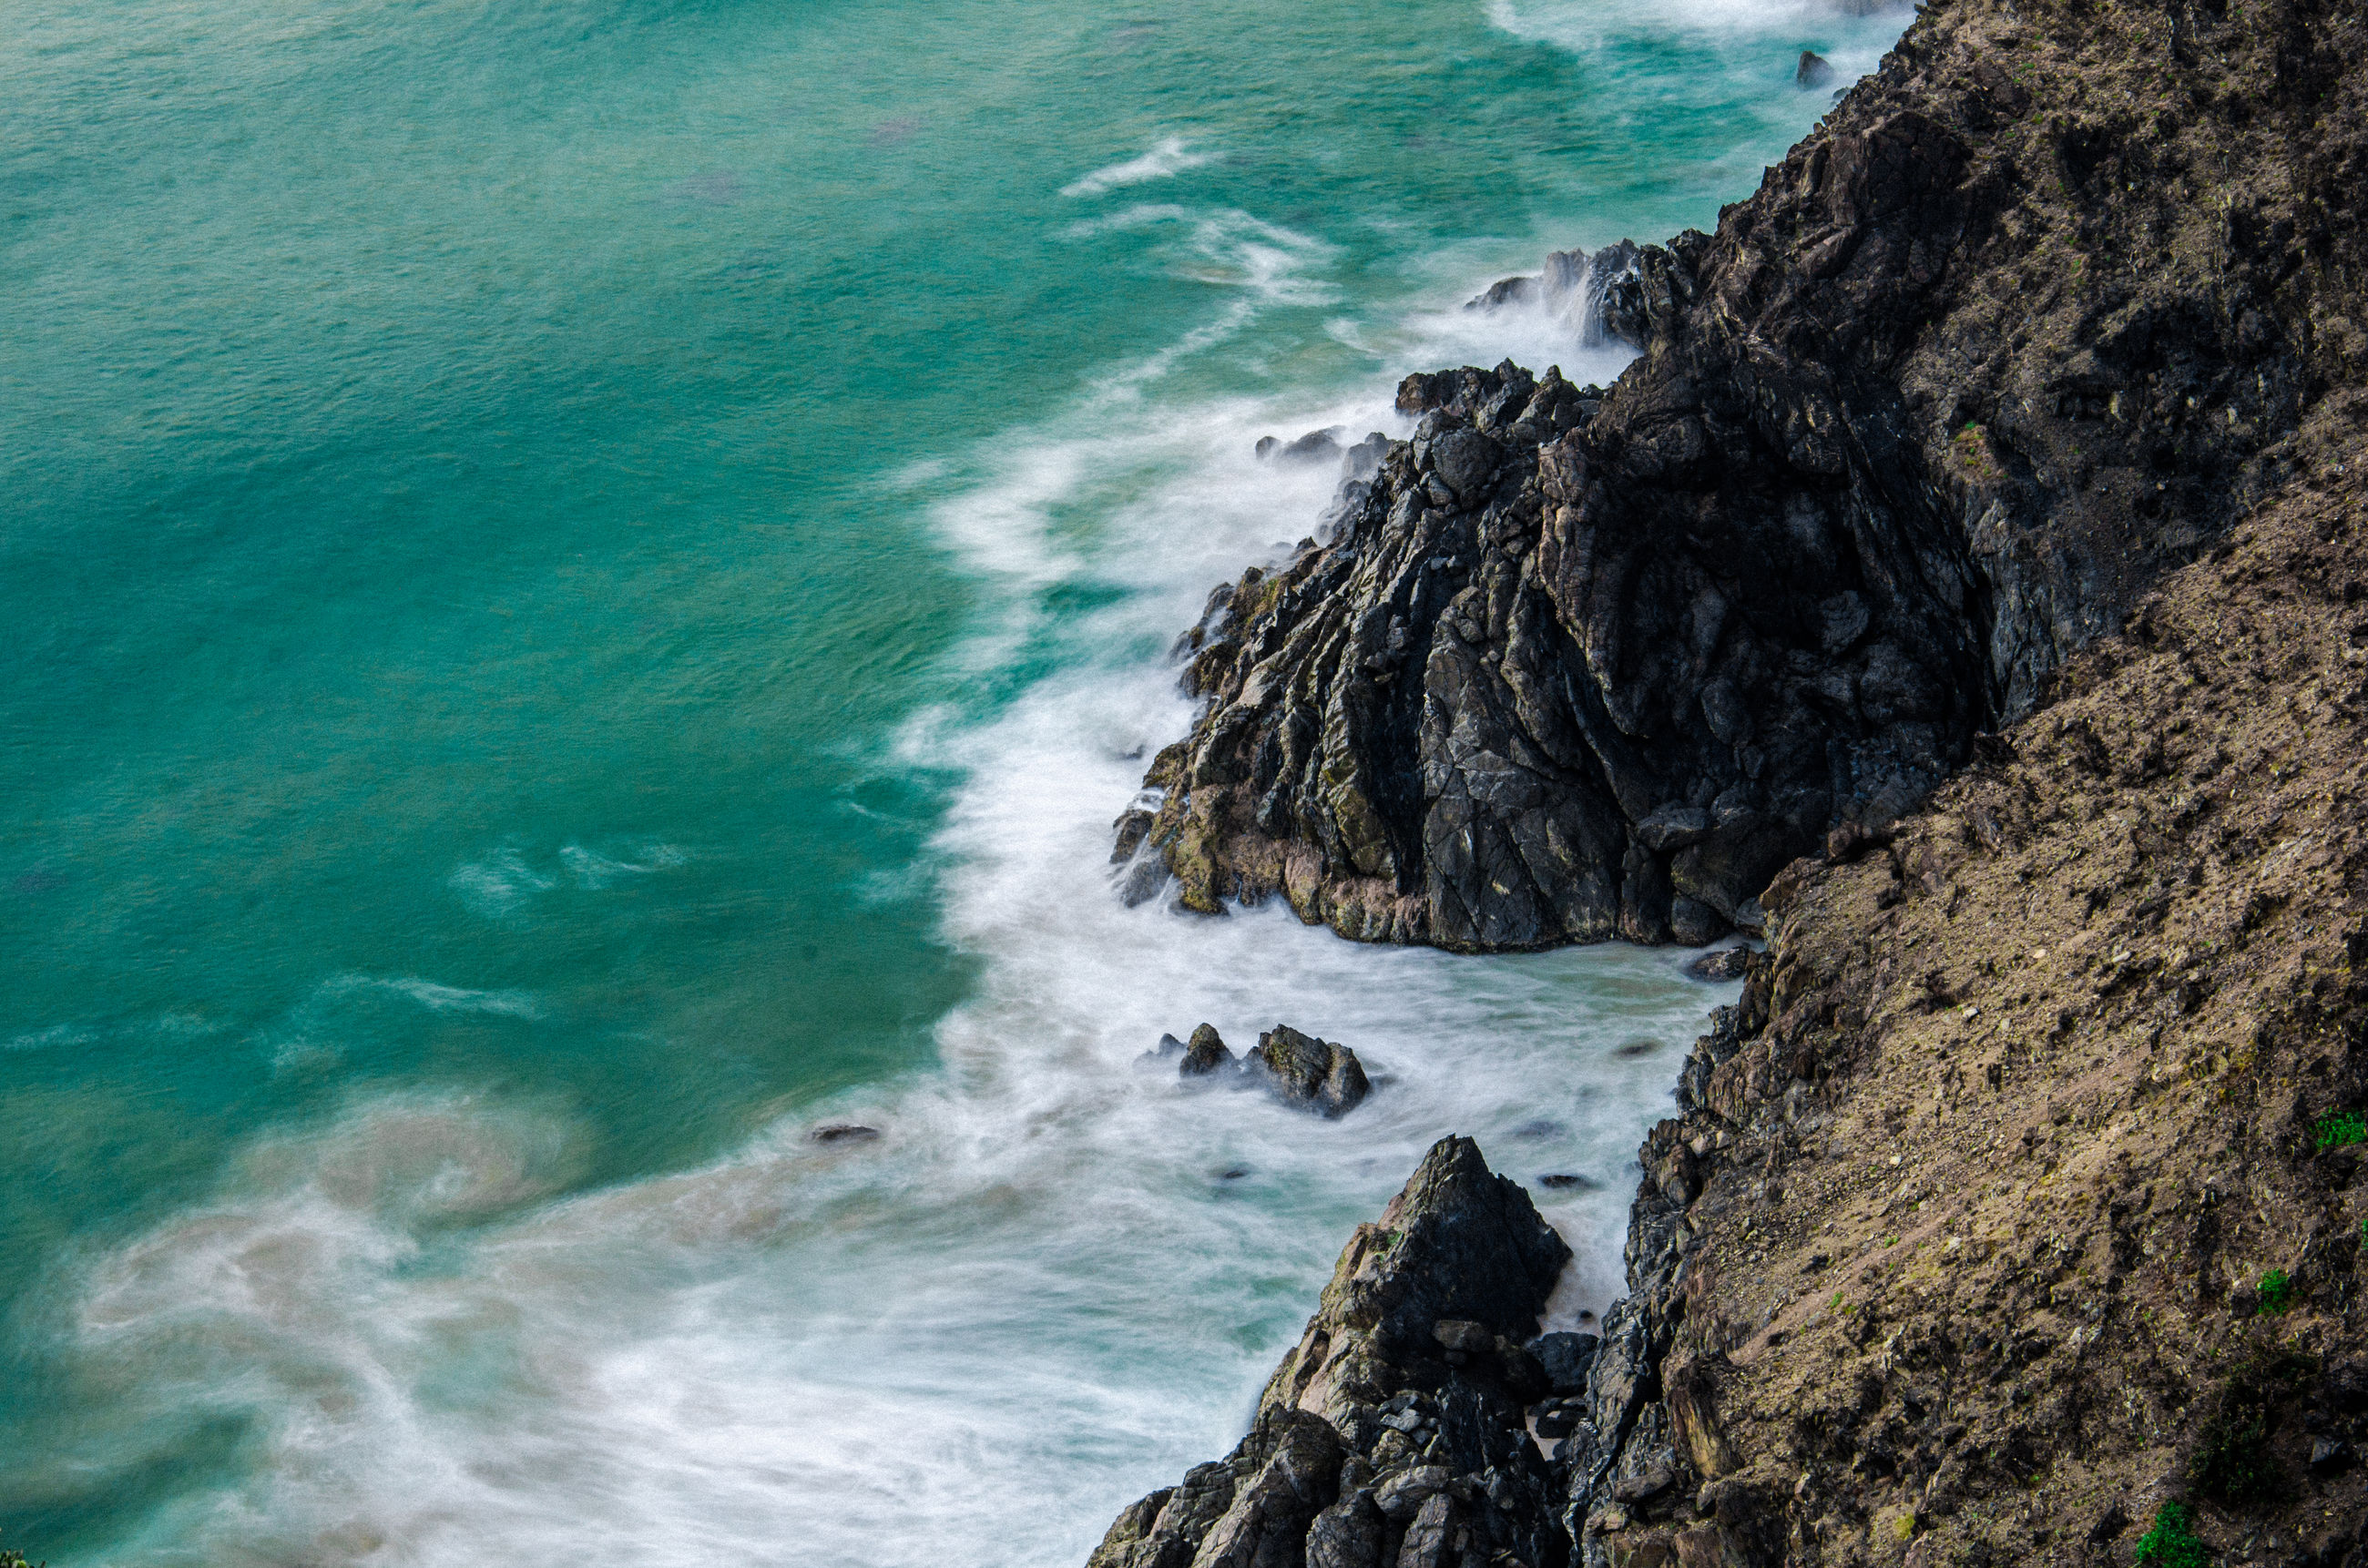 sea, rock, rock - object, solid, water, motion, beauty in nature, no people, rock formation, wave, land, nature, beach, power in nature, day, sport, aquatic sport, power, outdoors, hitting, breaking, rocky coastline